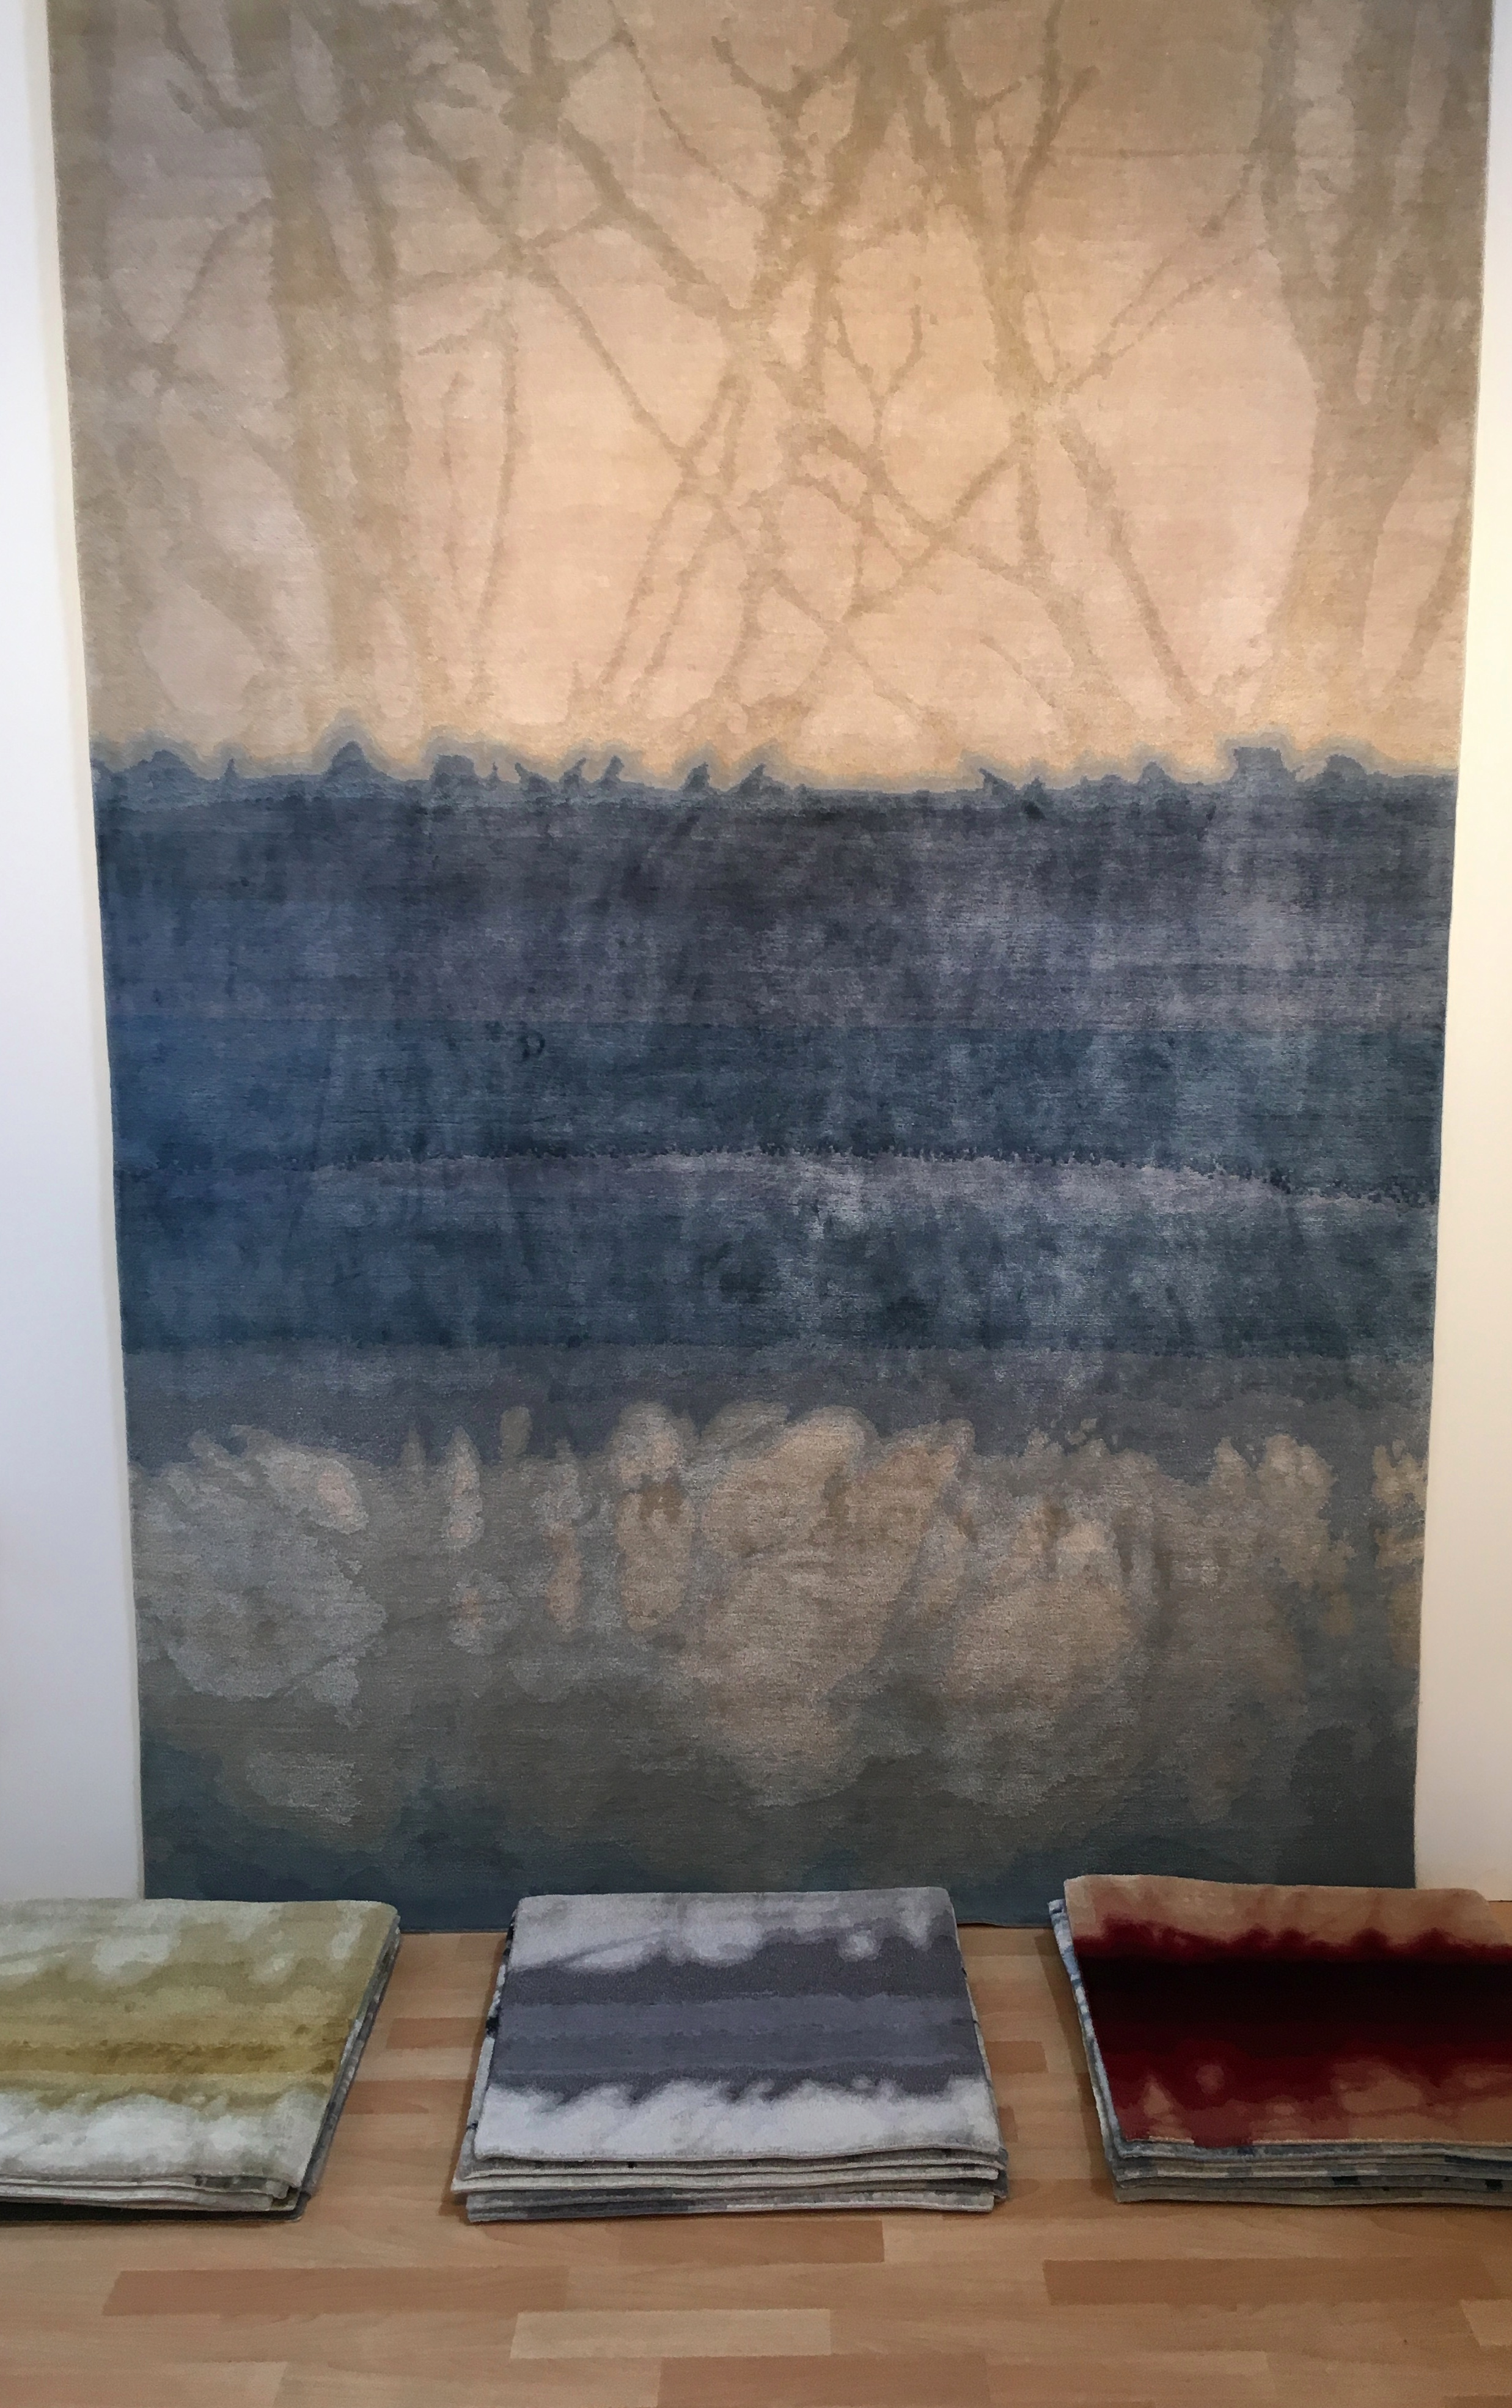 Tania Johnson Design  exhibited pieces from her beautiful Journeys in Colour collection of hand knotted rugs, inspired by her photographs of light, shadows and reflections.  She works with makers in Nepal, supported by humanitarian organisation  Good Weave .